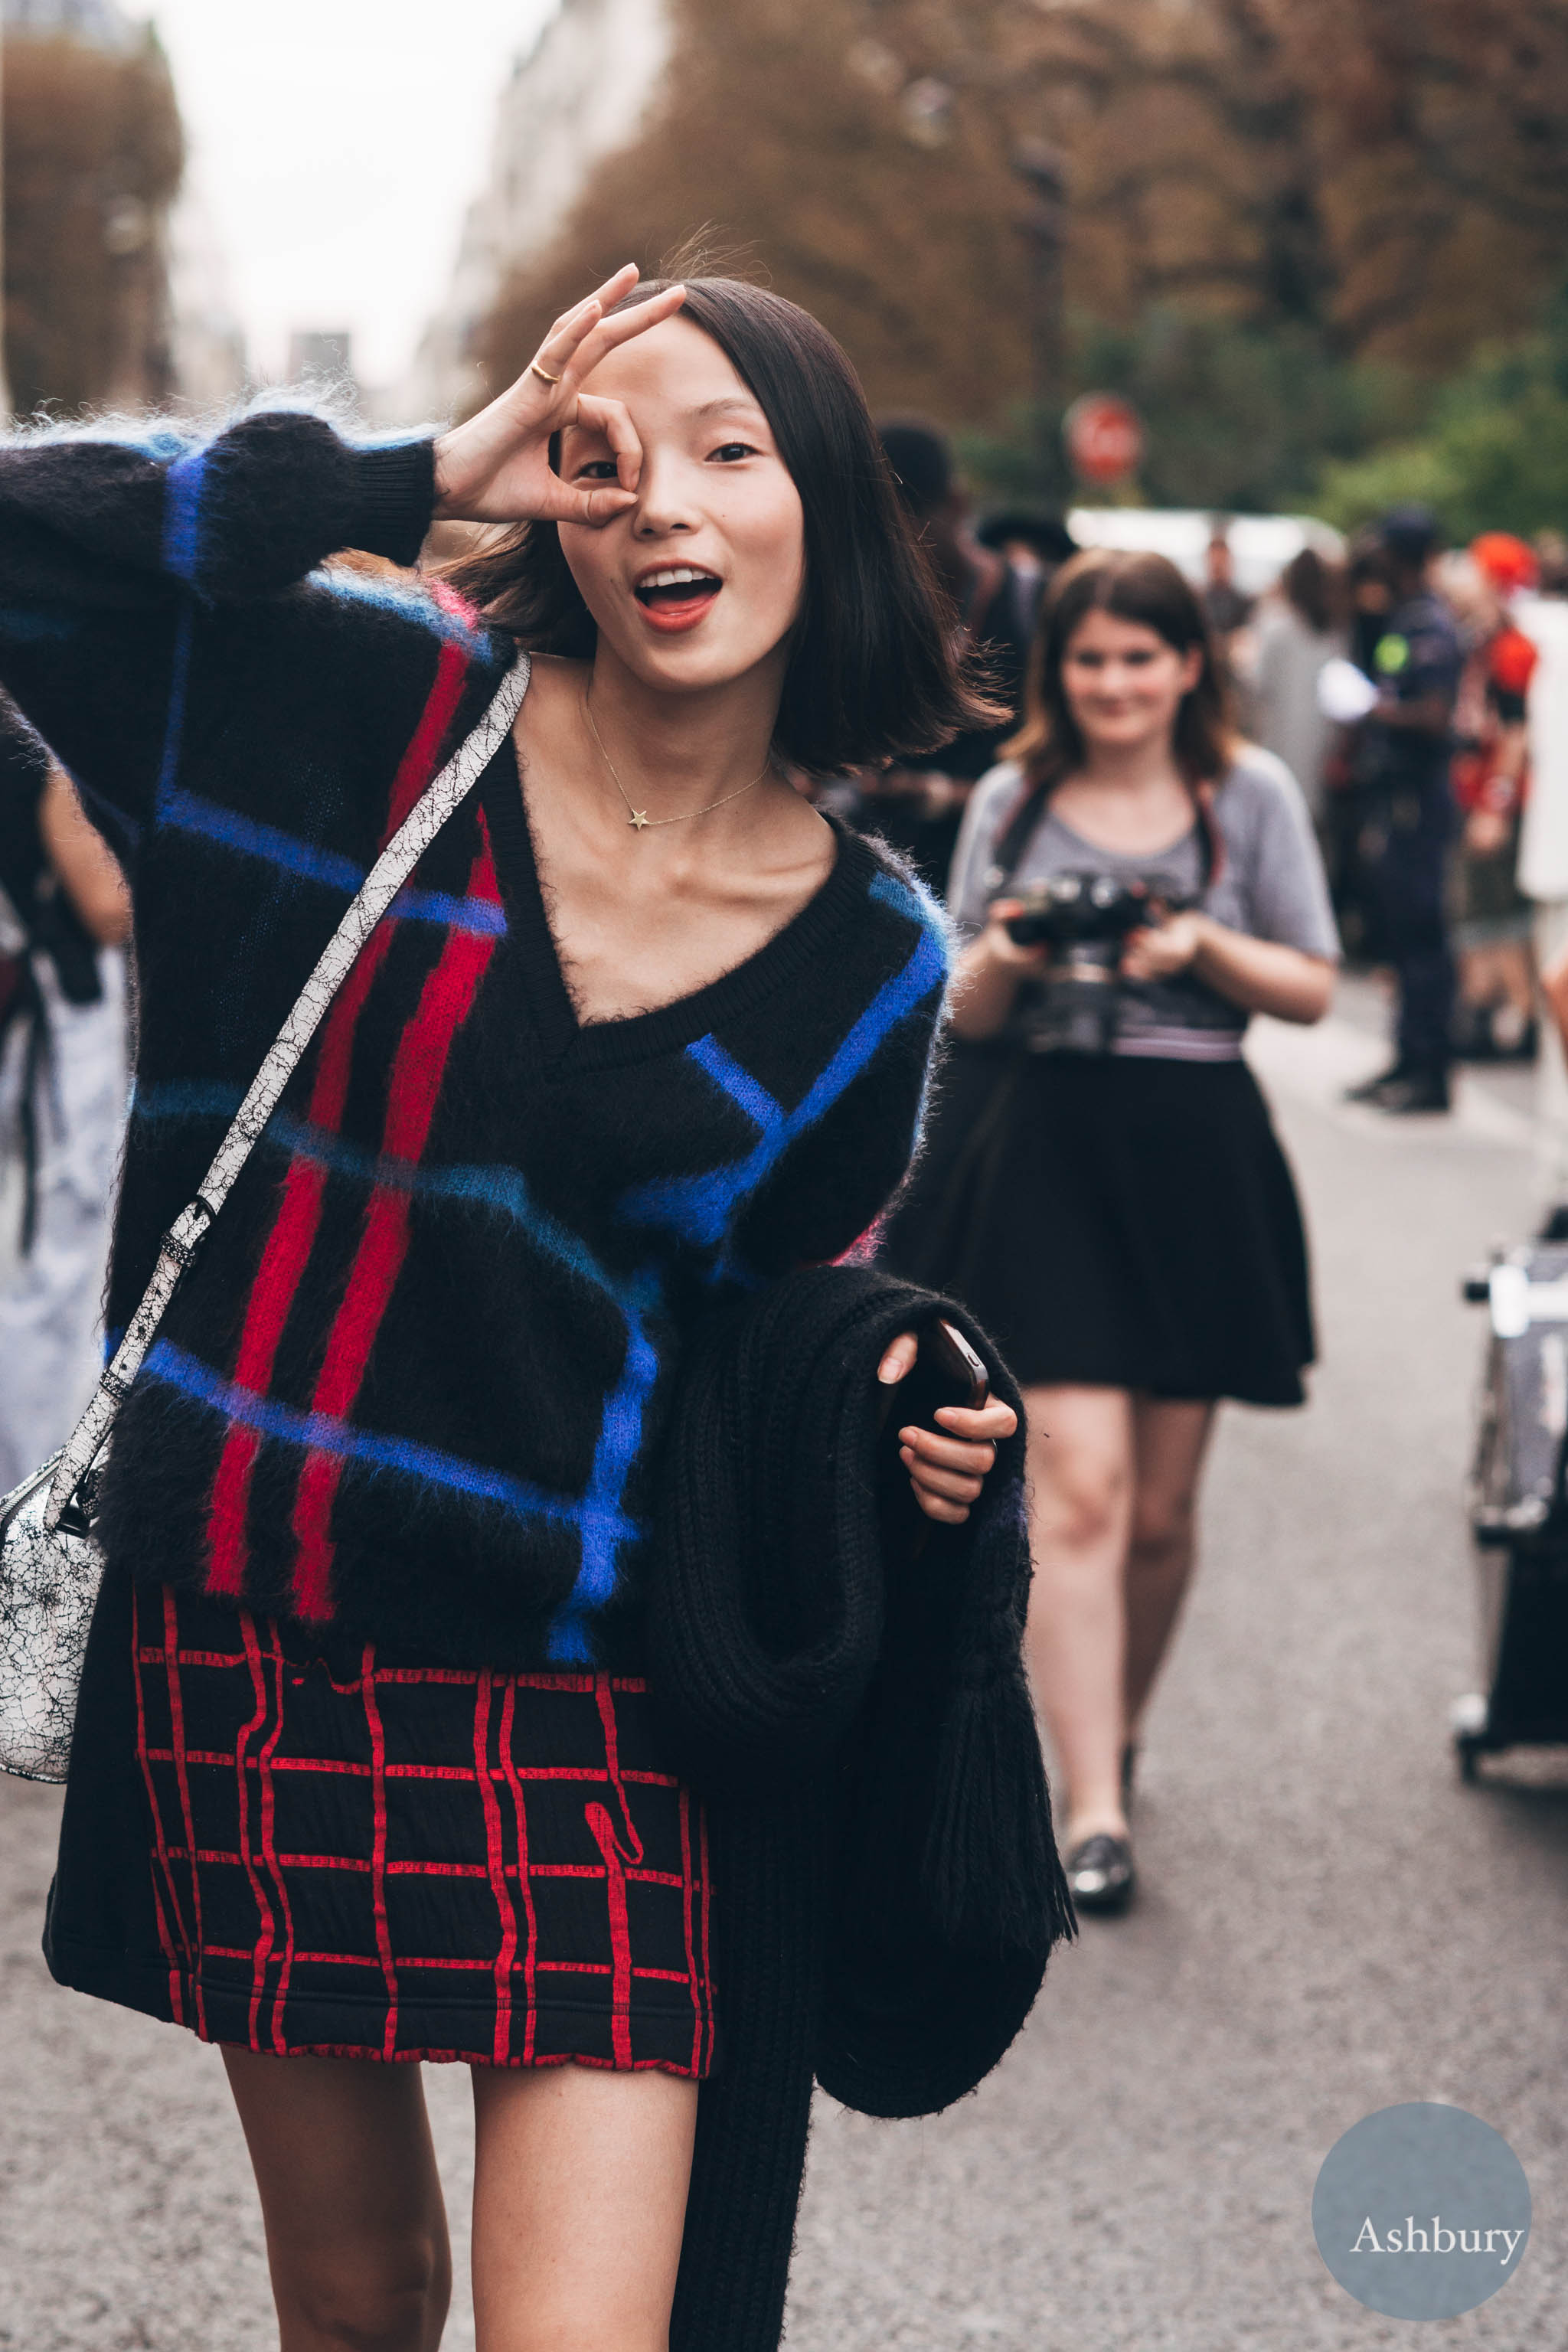 xiao wen ju - models off duty (2)